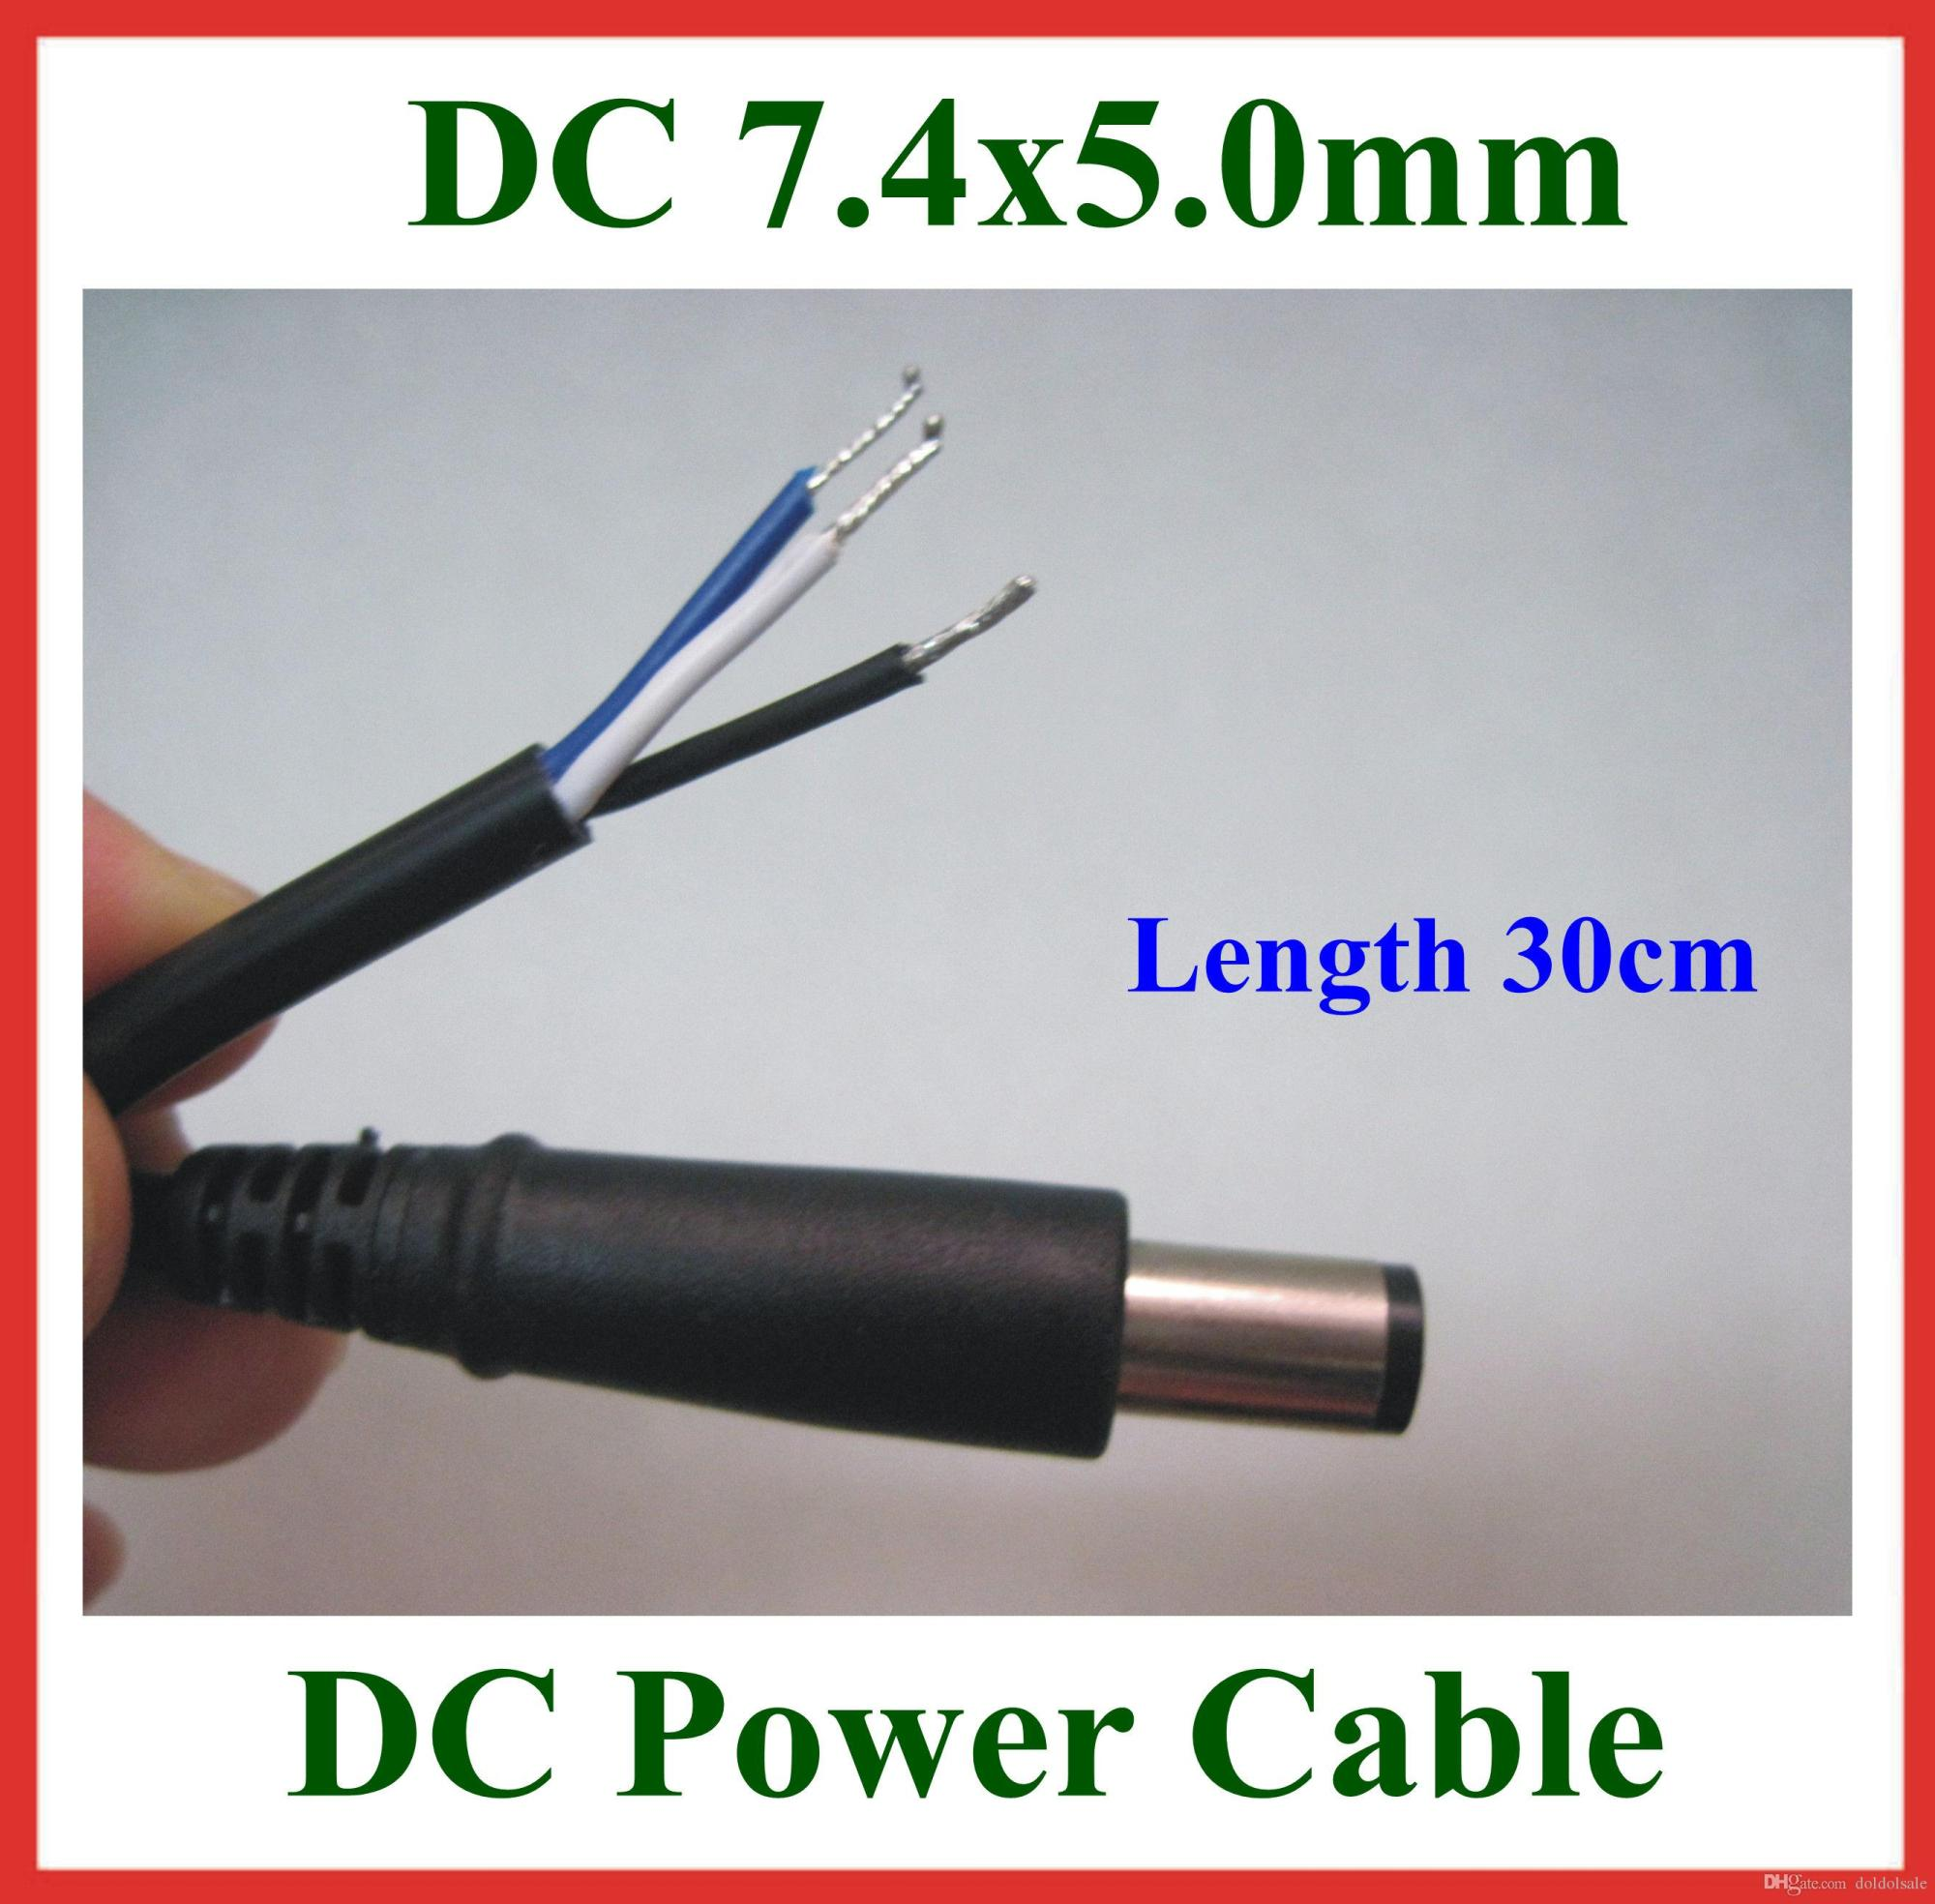 hight resolution of 2017 dc tip plug 7 4 5 0mm 7 4x5 0mm dc power supply hp laptop charger wiring diagram